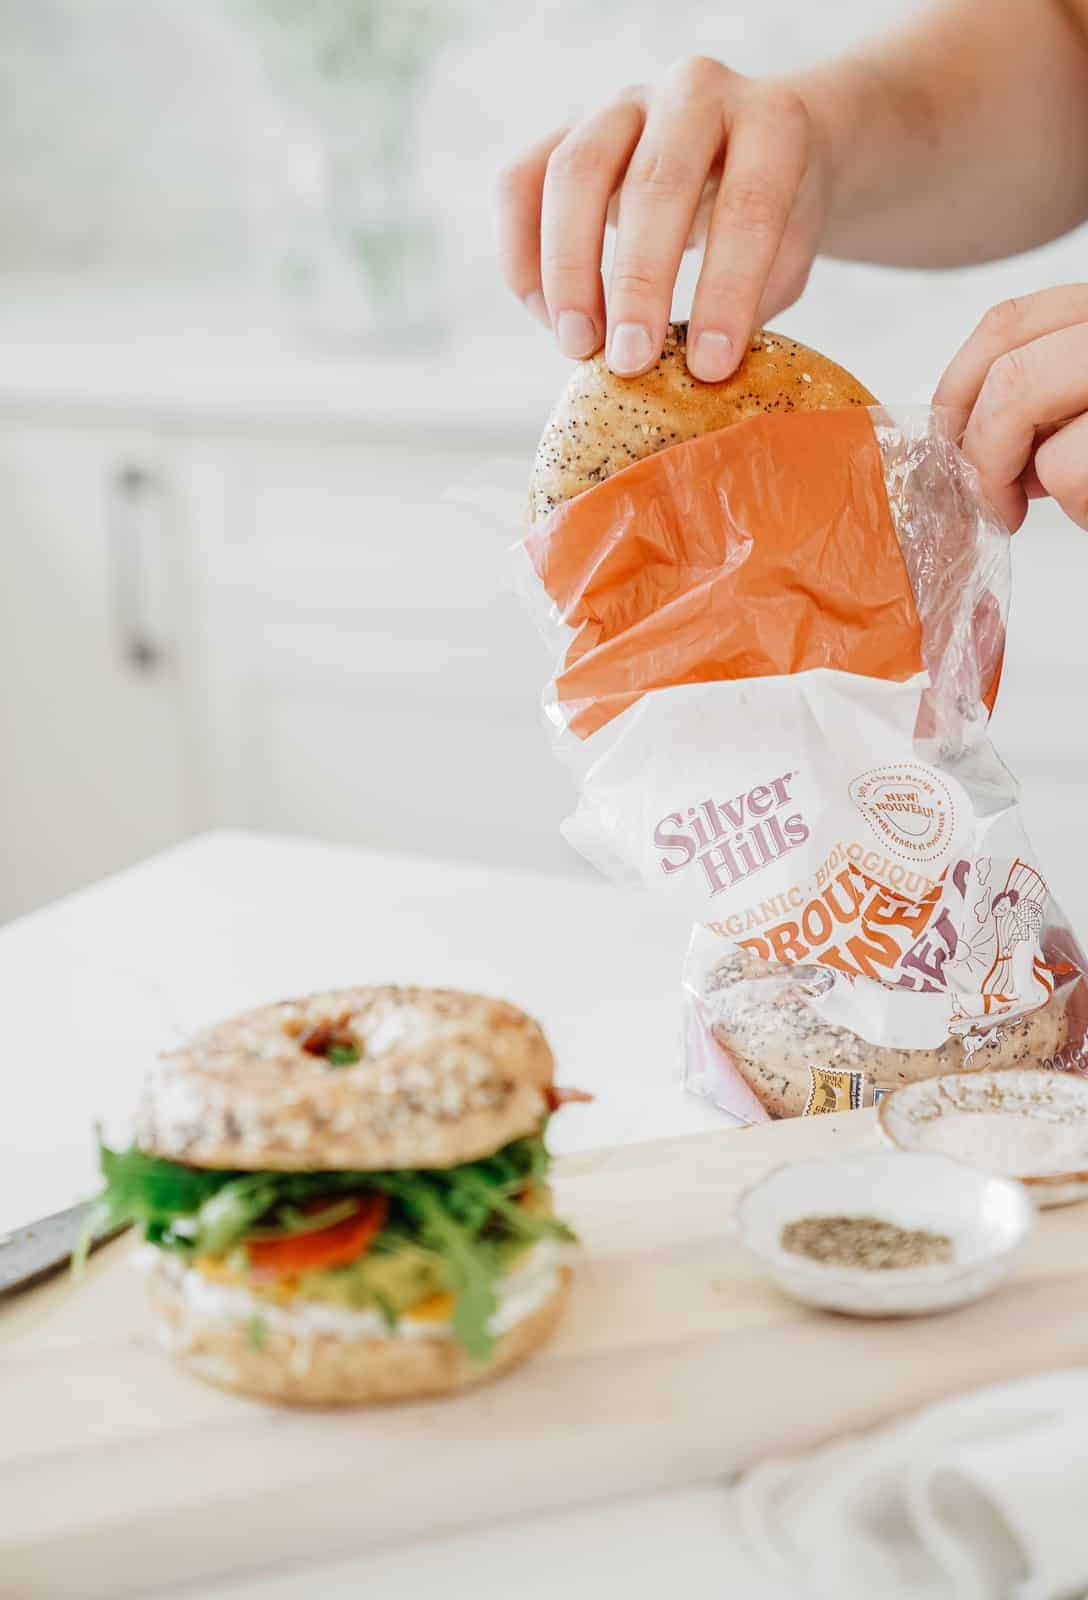 Silver Hills Everything Bagel being pulled out of bag